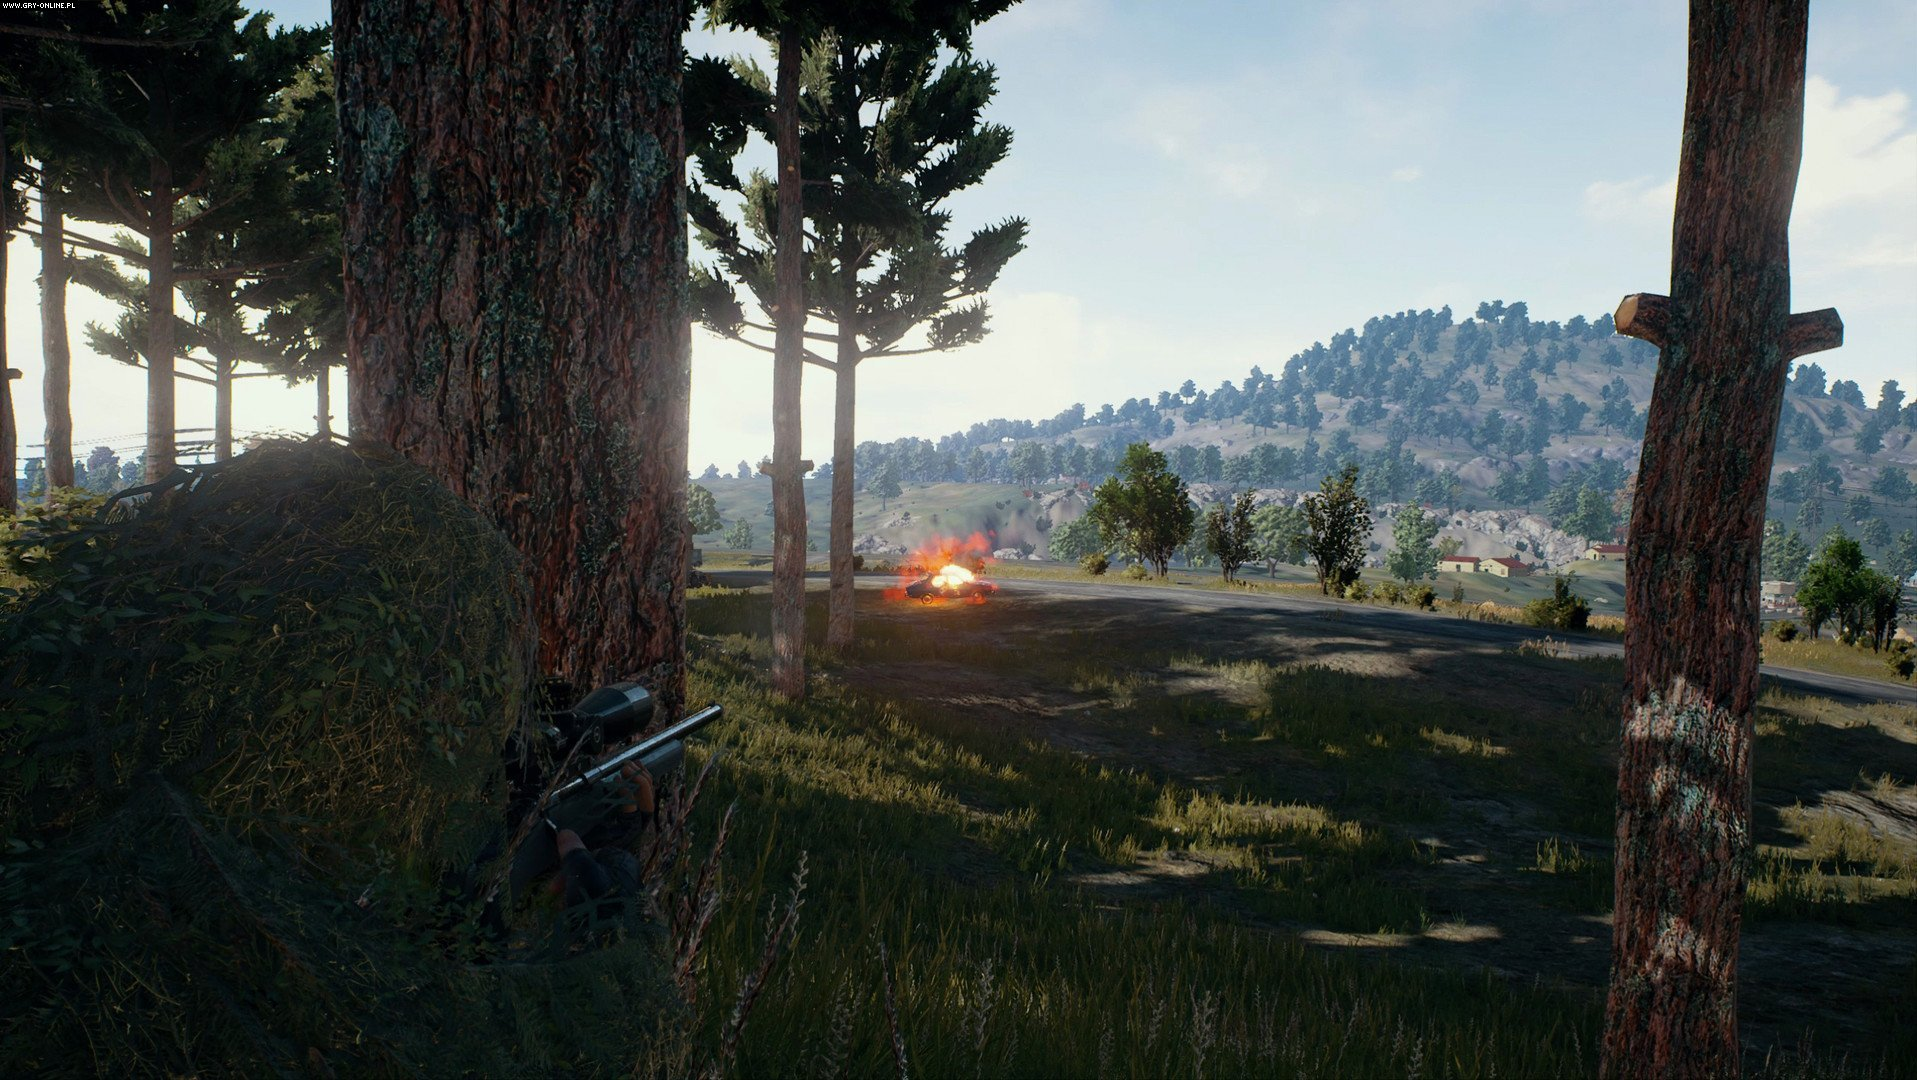 Playerunknown's Battlegrounds PC Games Image 34/41, PUBG Corporation